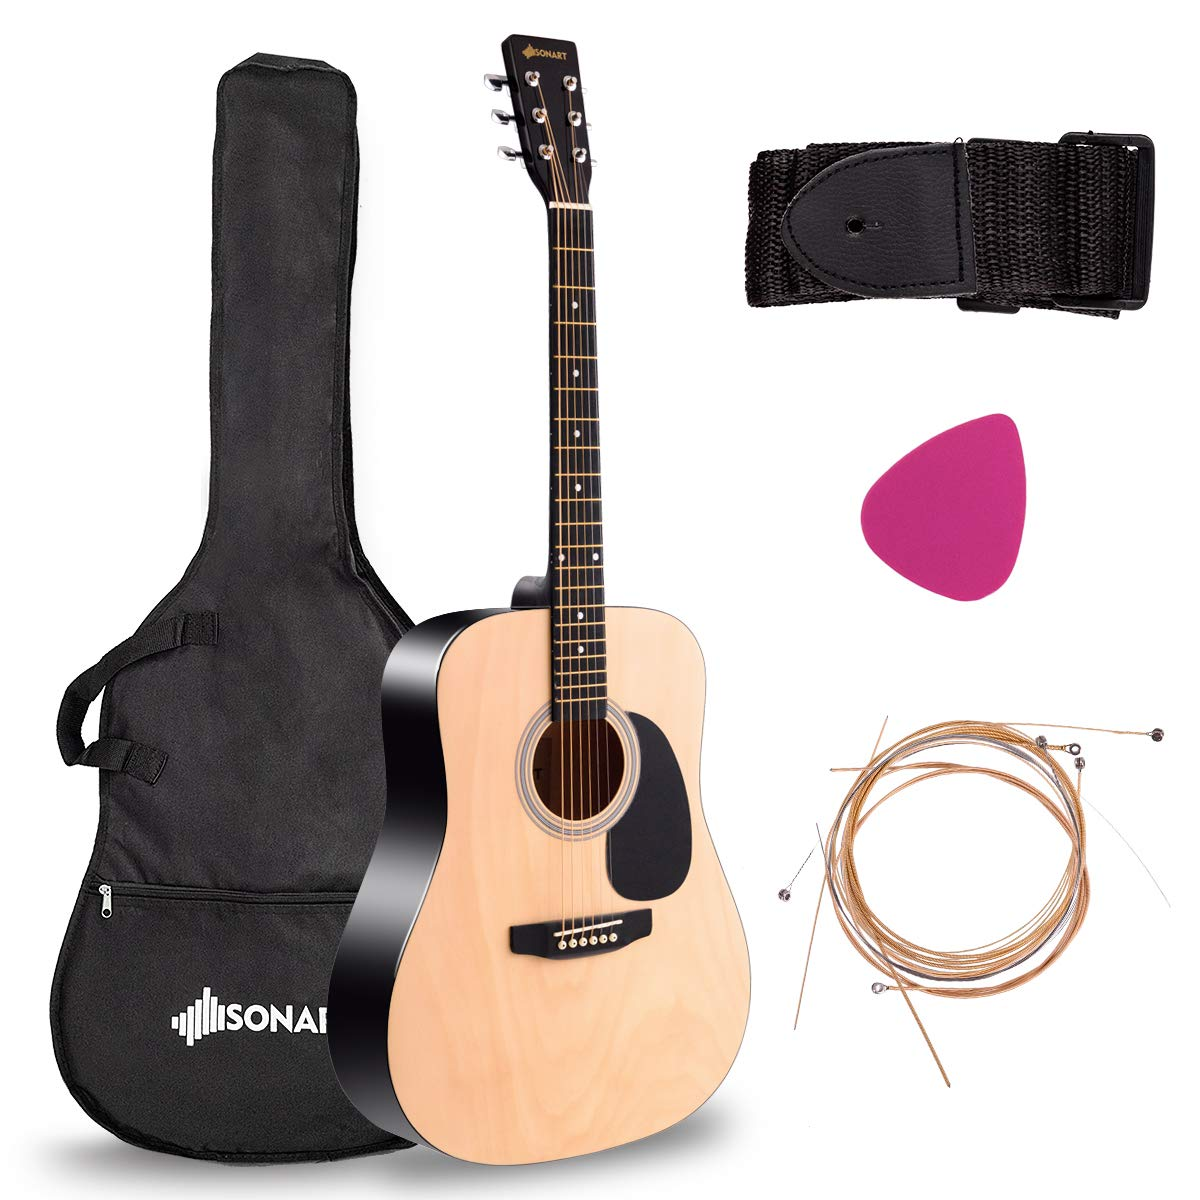 "Sonart Full Size Acoustic Guitar, 41"" Wooden Structure Steel String W/Case, Shoulder Strap, Pick, Extra Strings for Beginners, Starters, Orange"